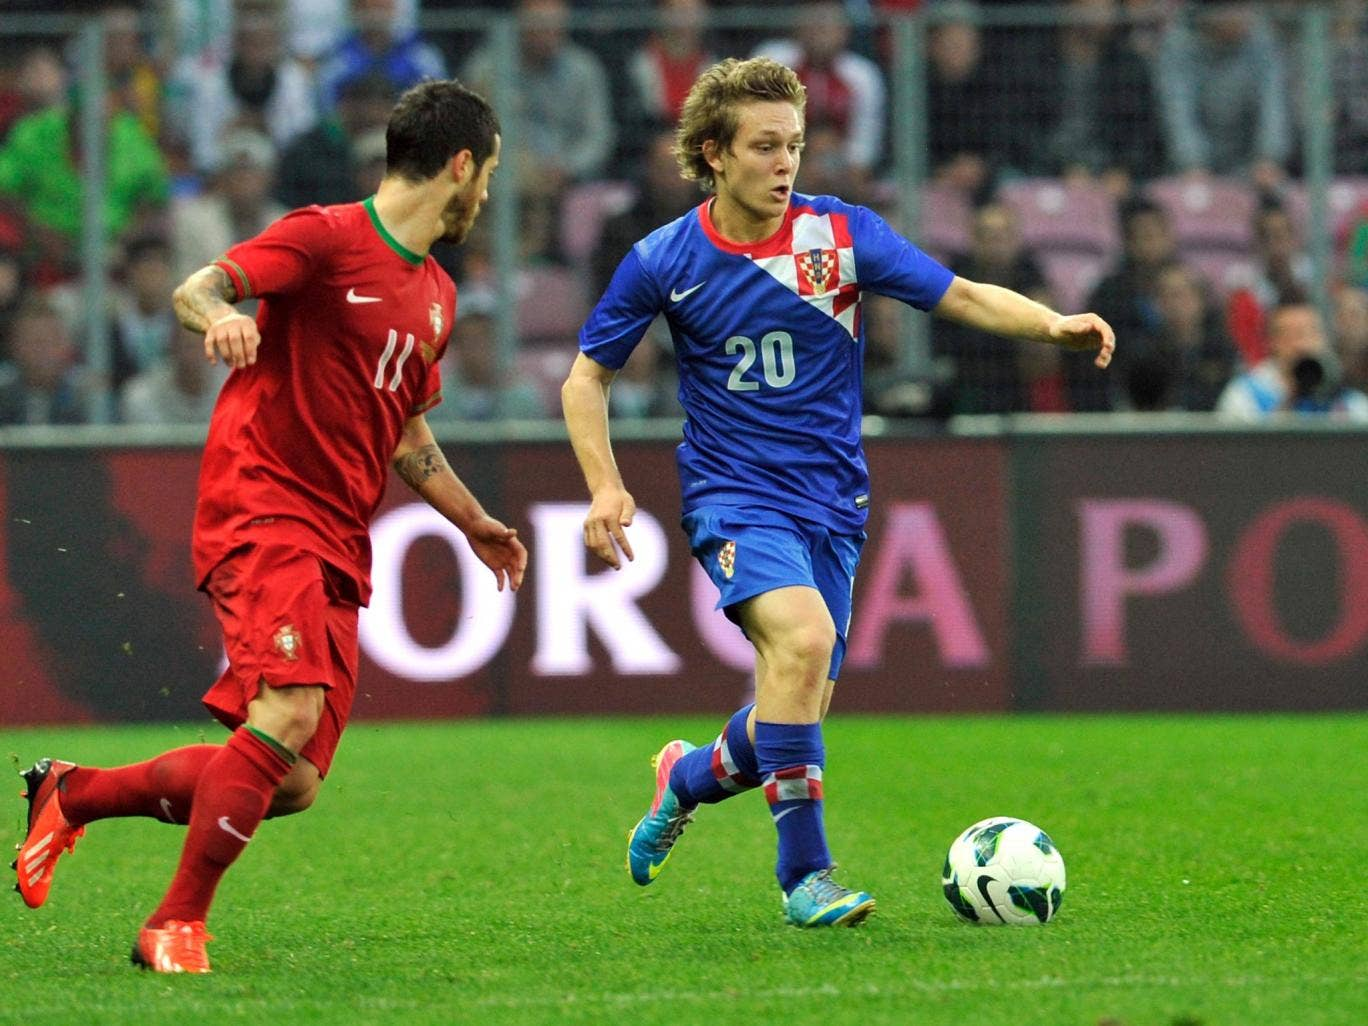 Alen Halilovic has agreed to join Barcelona from Dinamo Zagreb in the summer